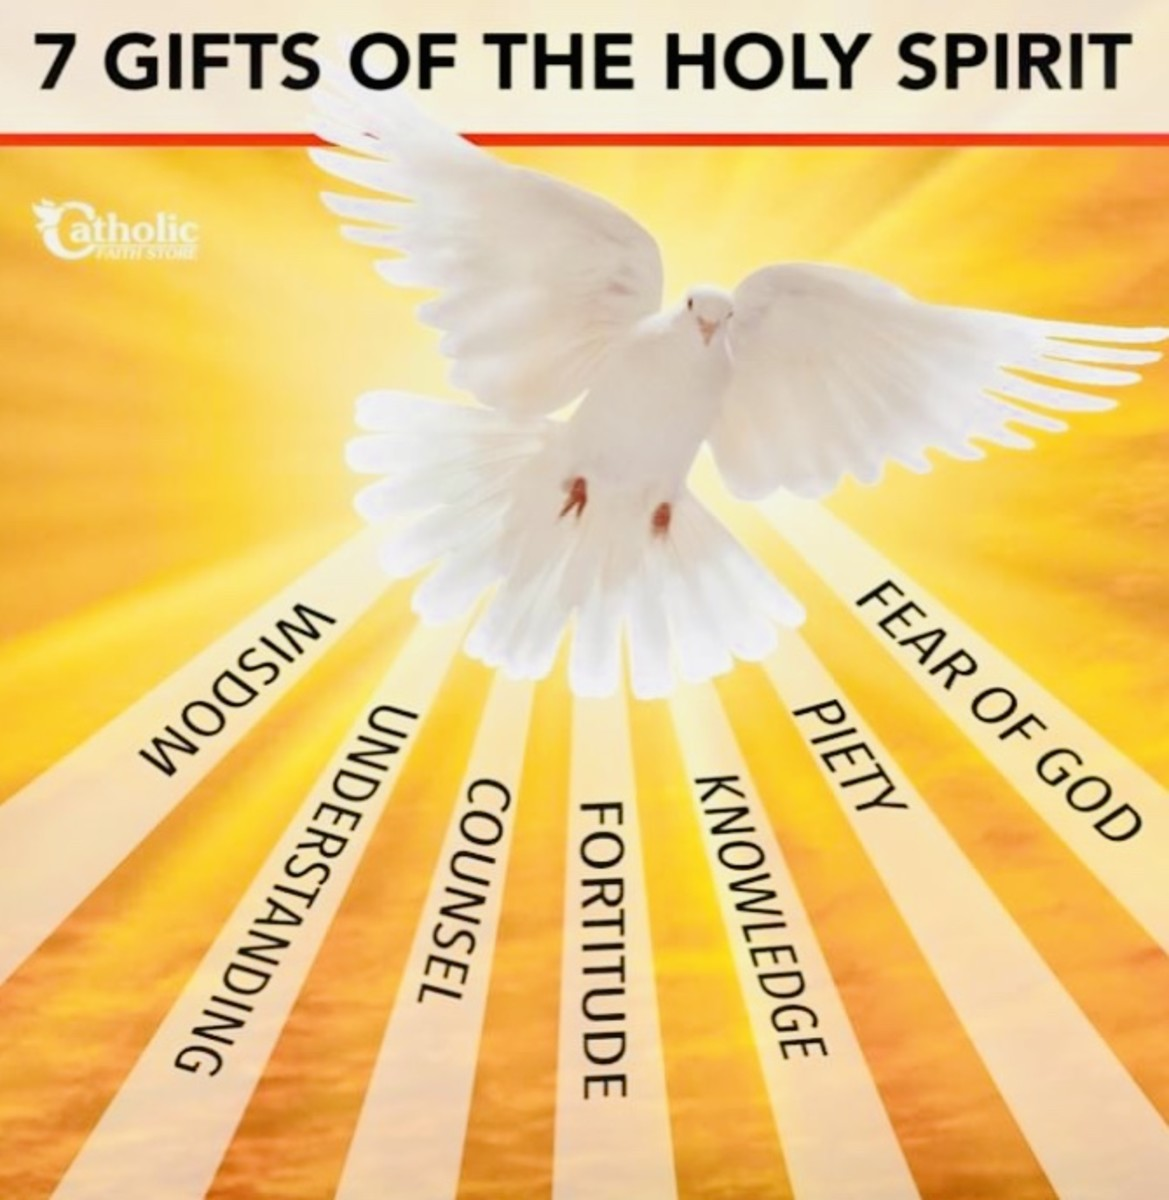 humor-the-8th-gift-of-the-holy-spirit